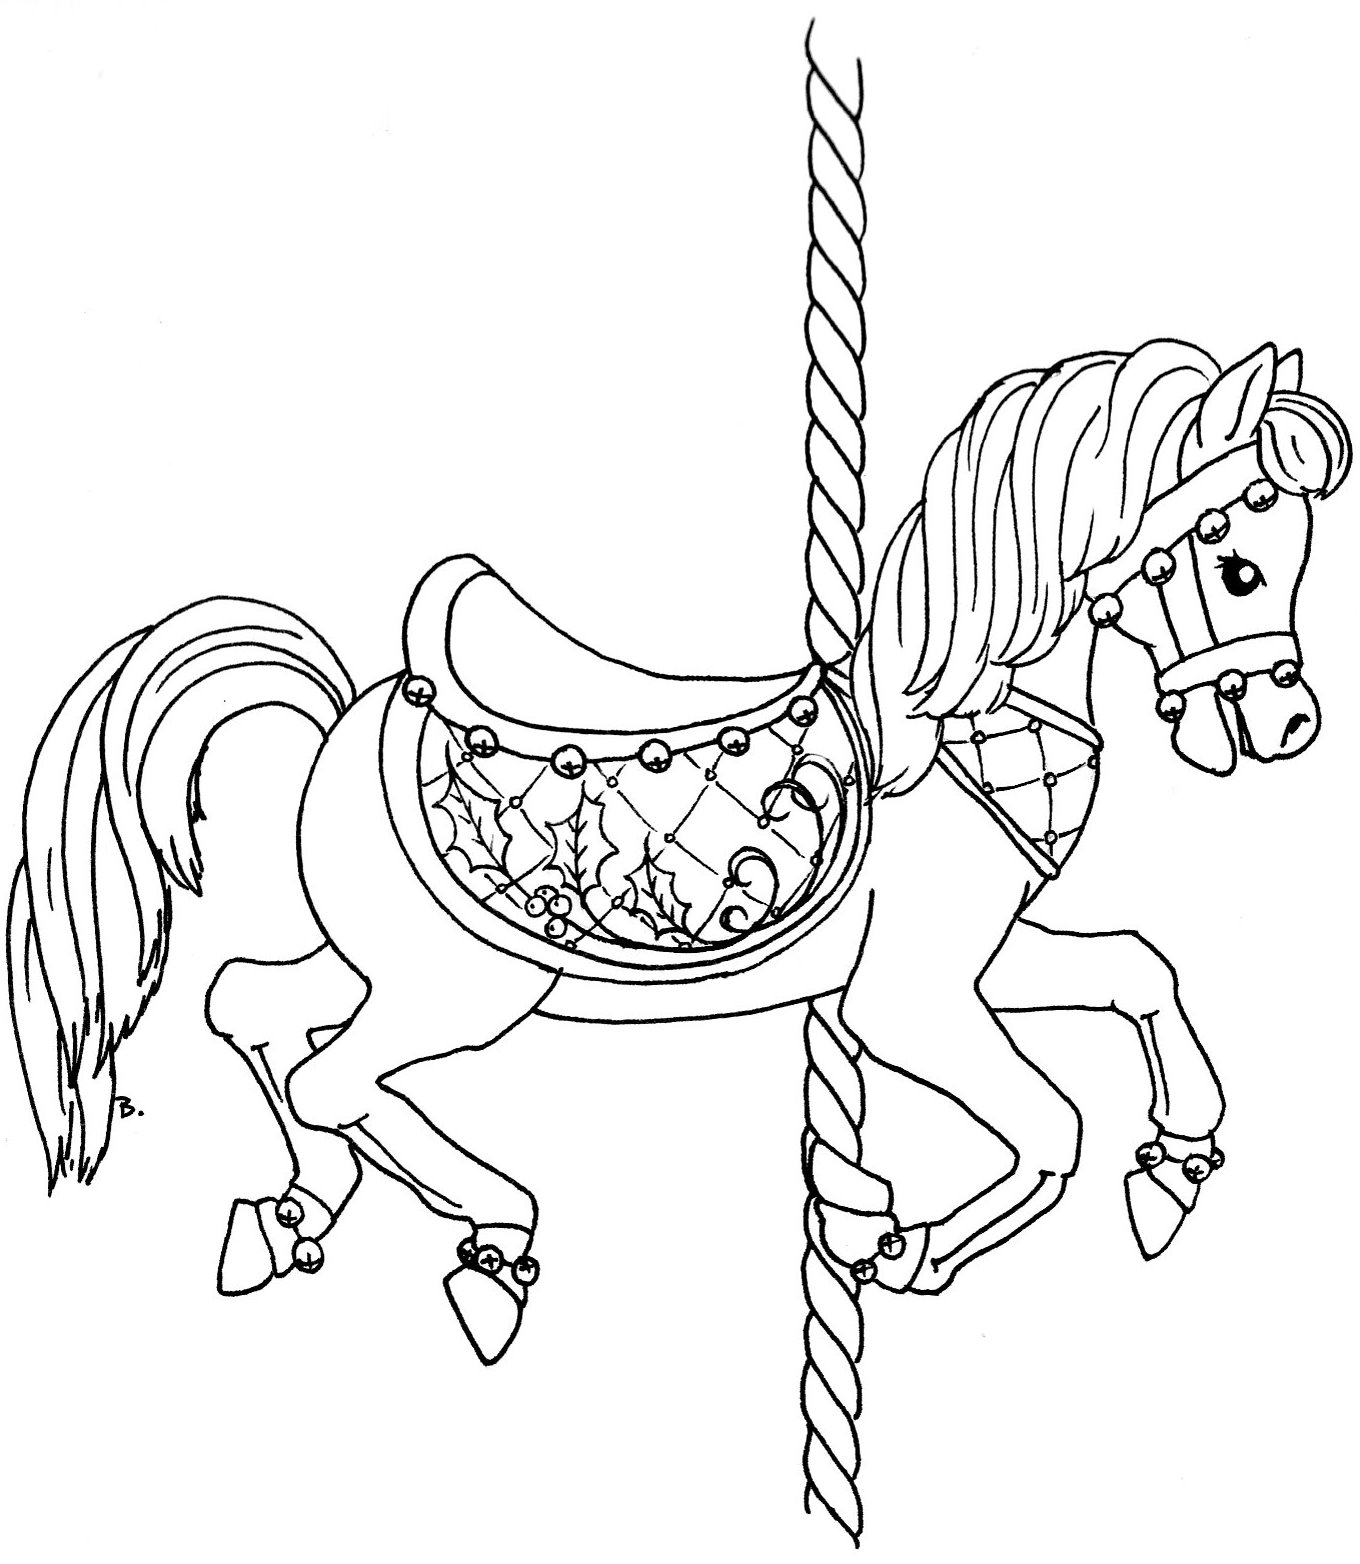 carasel coloring pages - photo#36